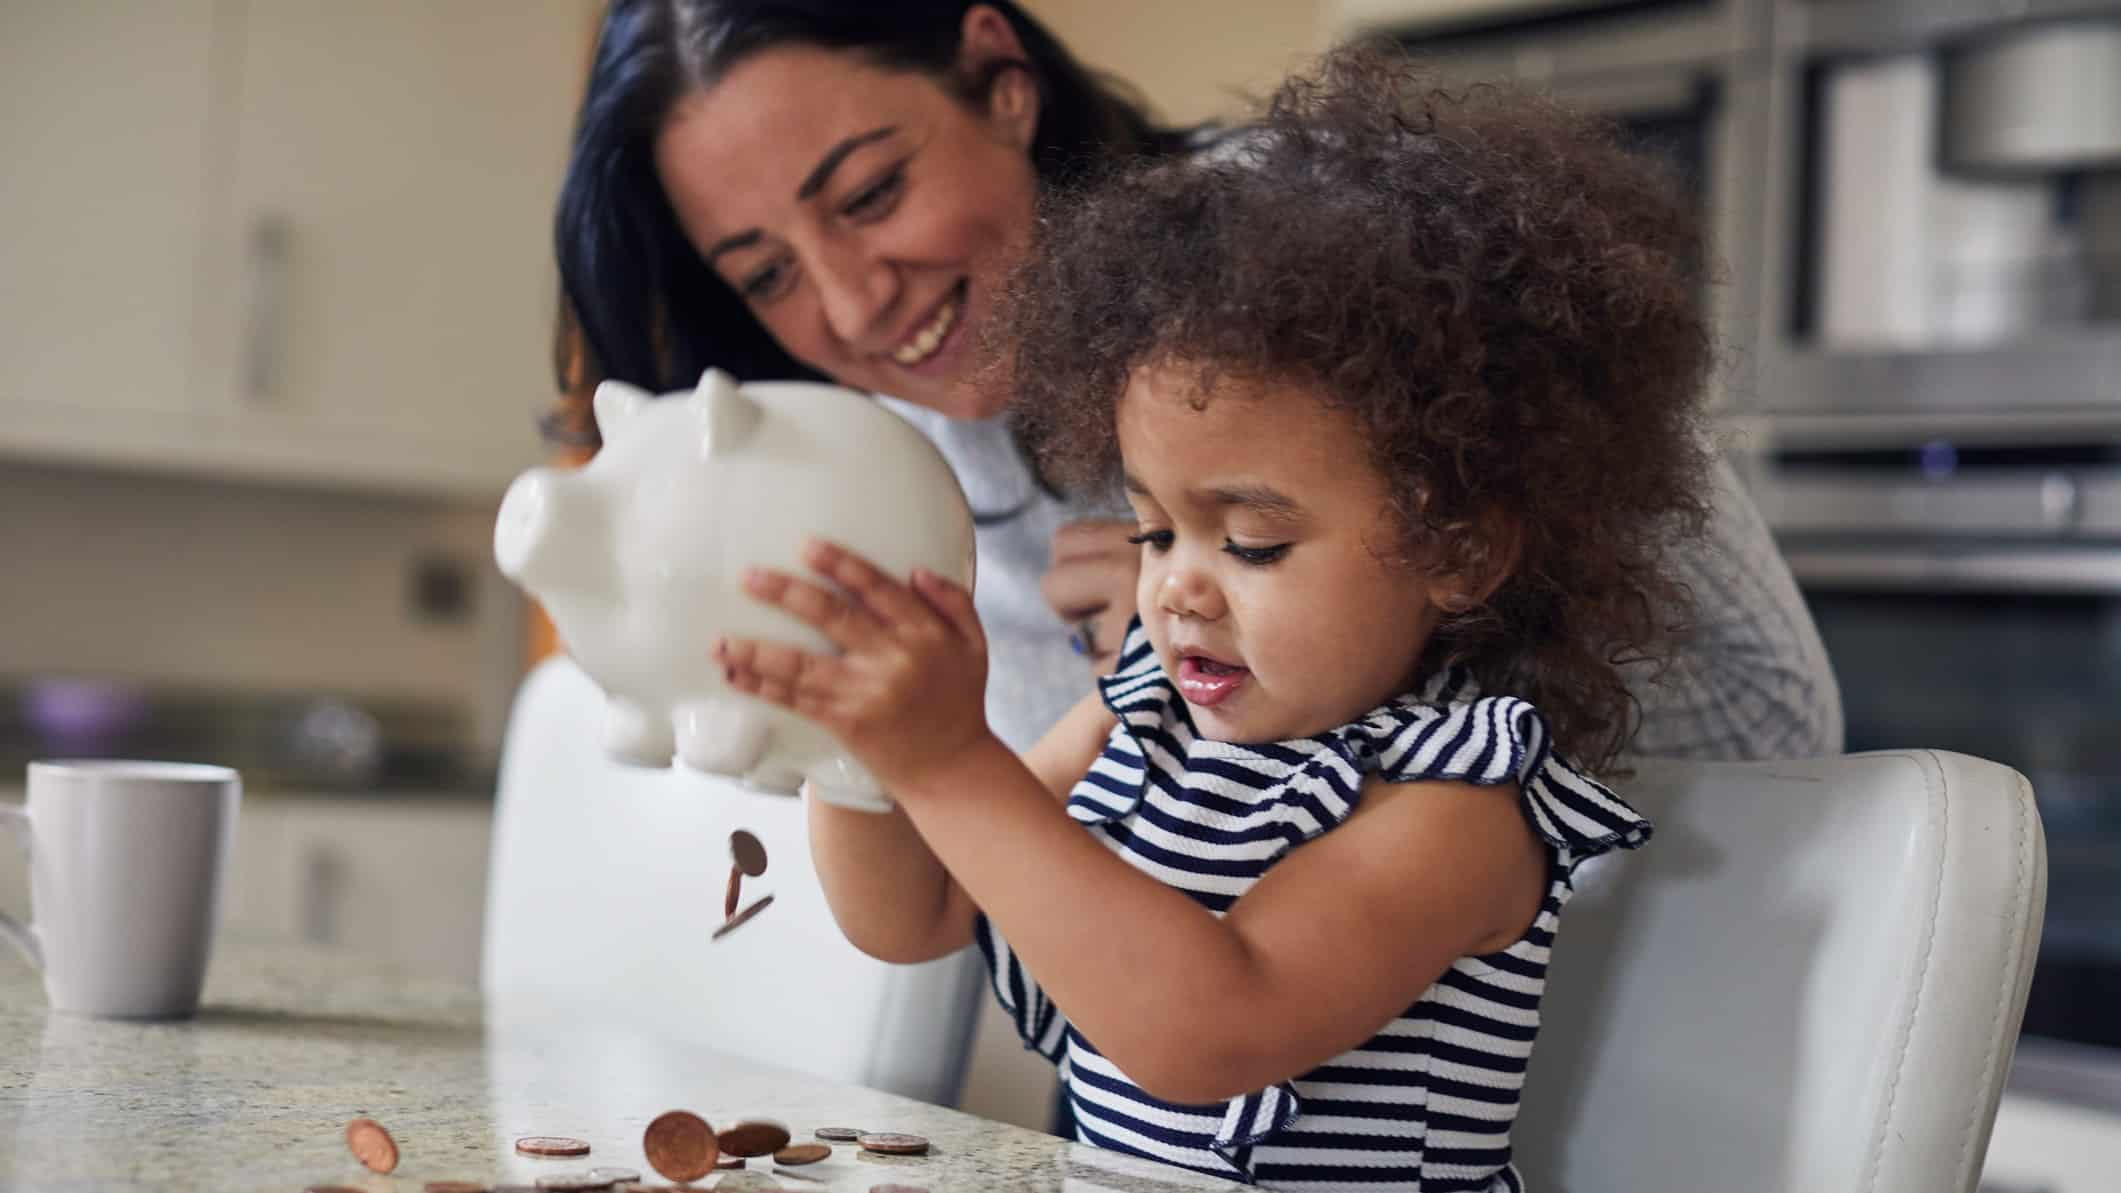 child emptying coins out of savings piggy bank